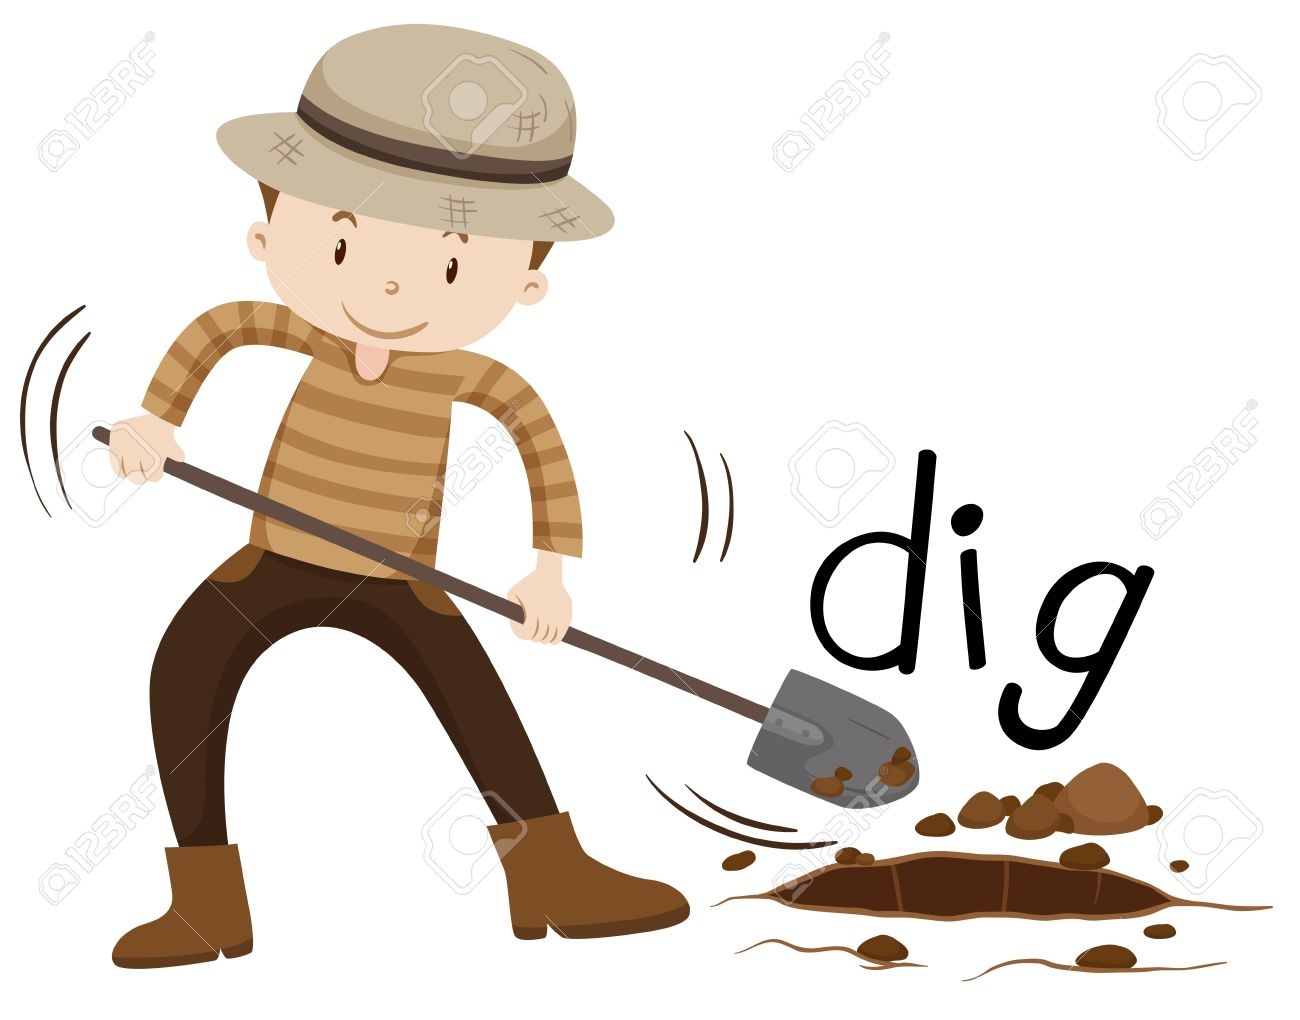 hight resolution of man with shovel digging a hole illustration stock vector 52039124